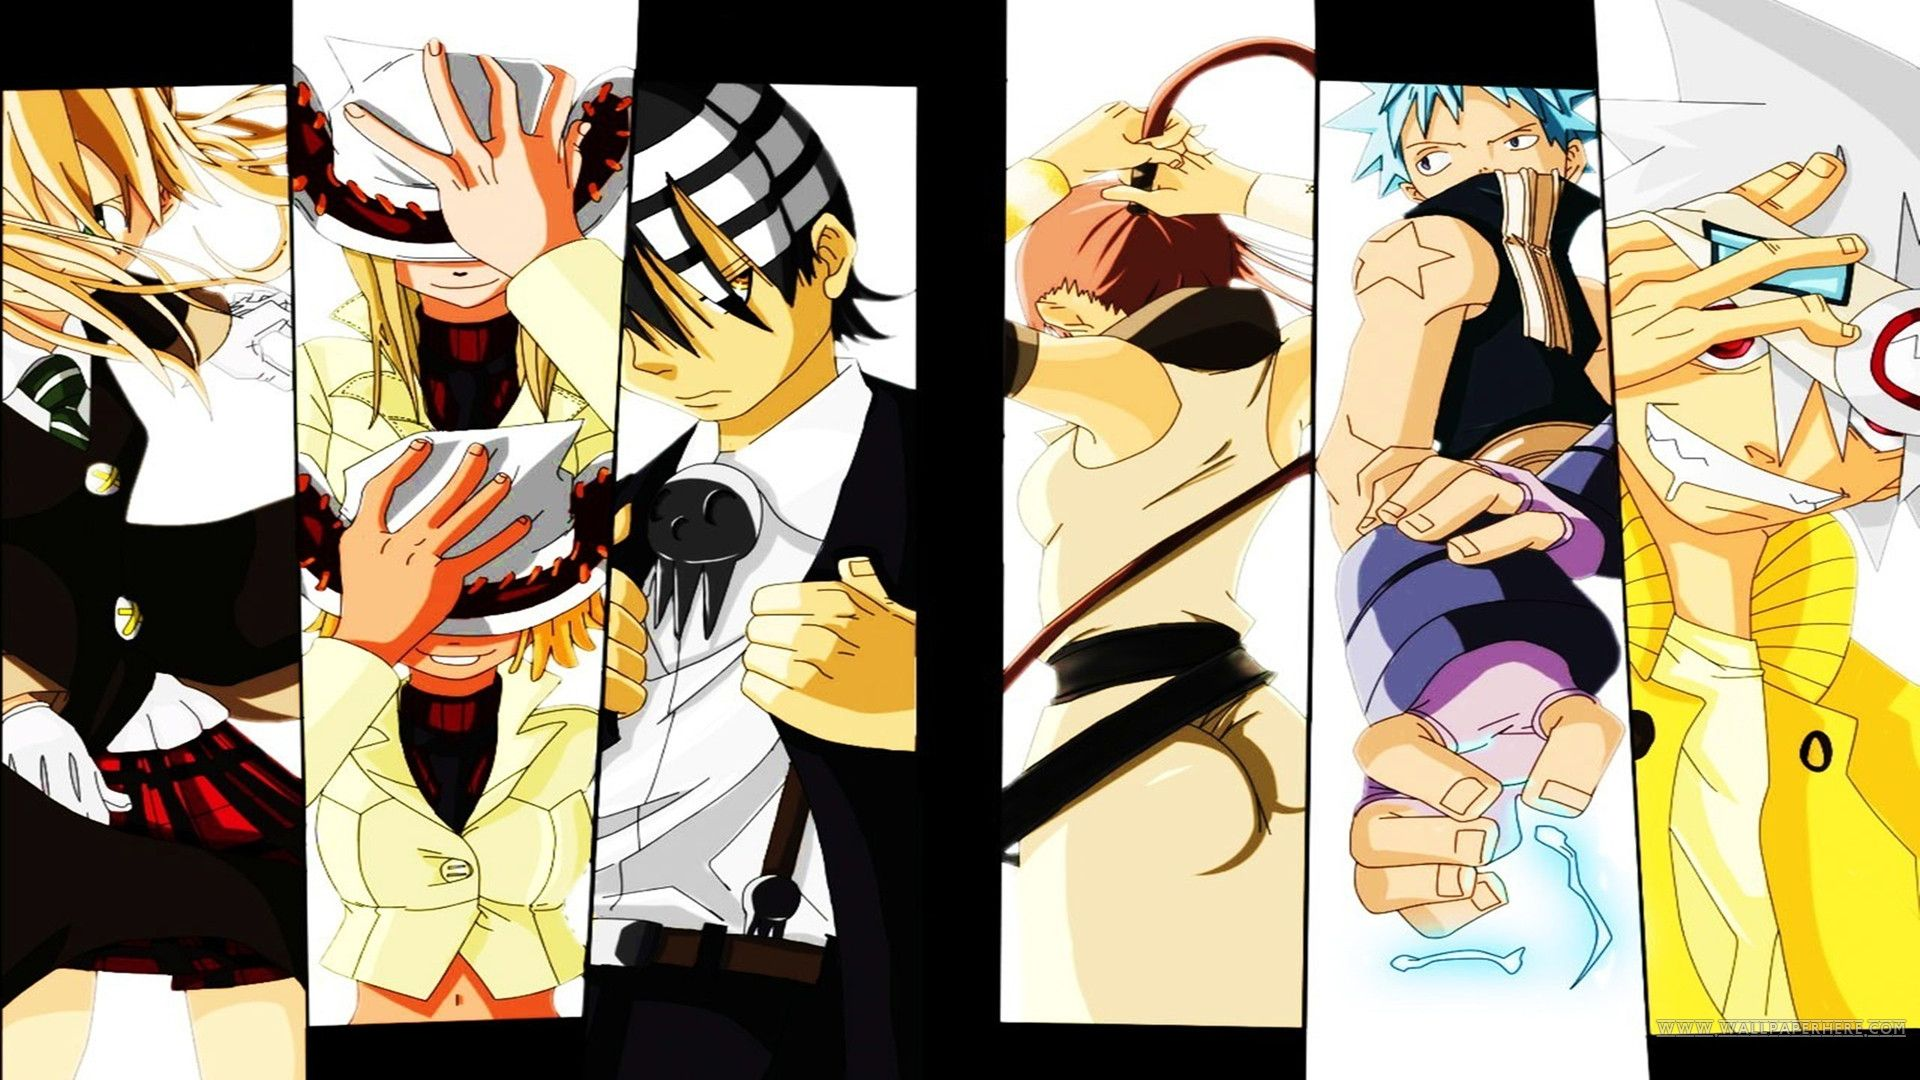 Hd Anime Soul Eater Wallpapers (With images) Anime soul